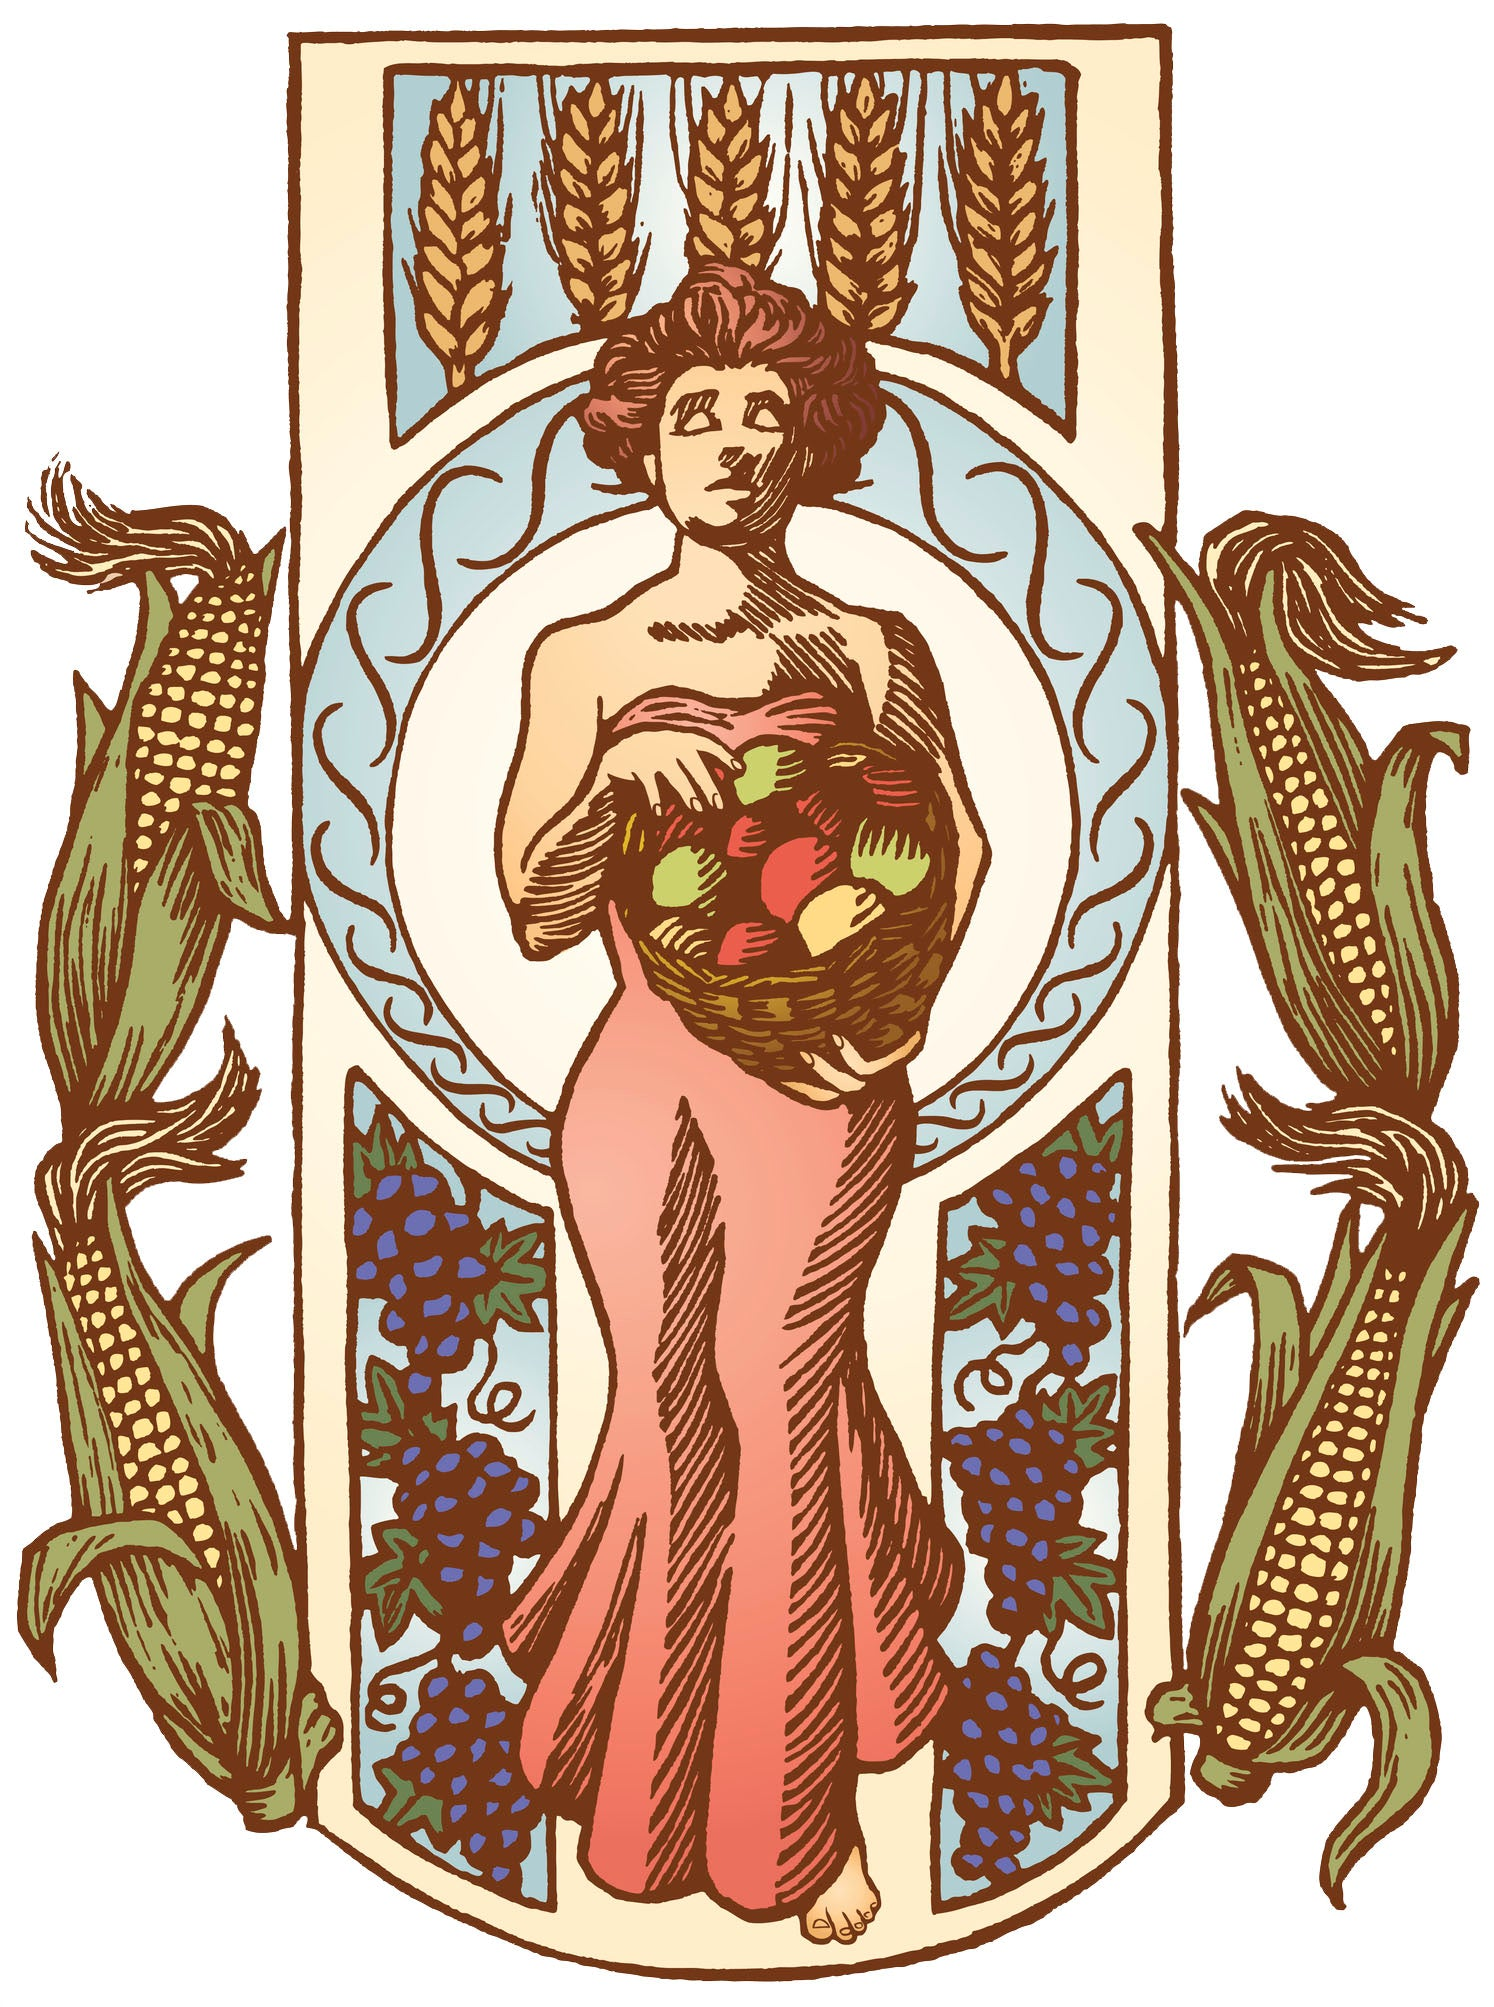 Corn, Wheat, and Grape Harvest Goddess Vinyl Decal Sticker